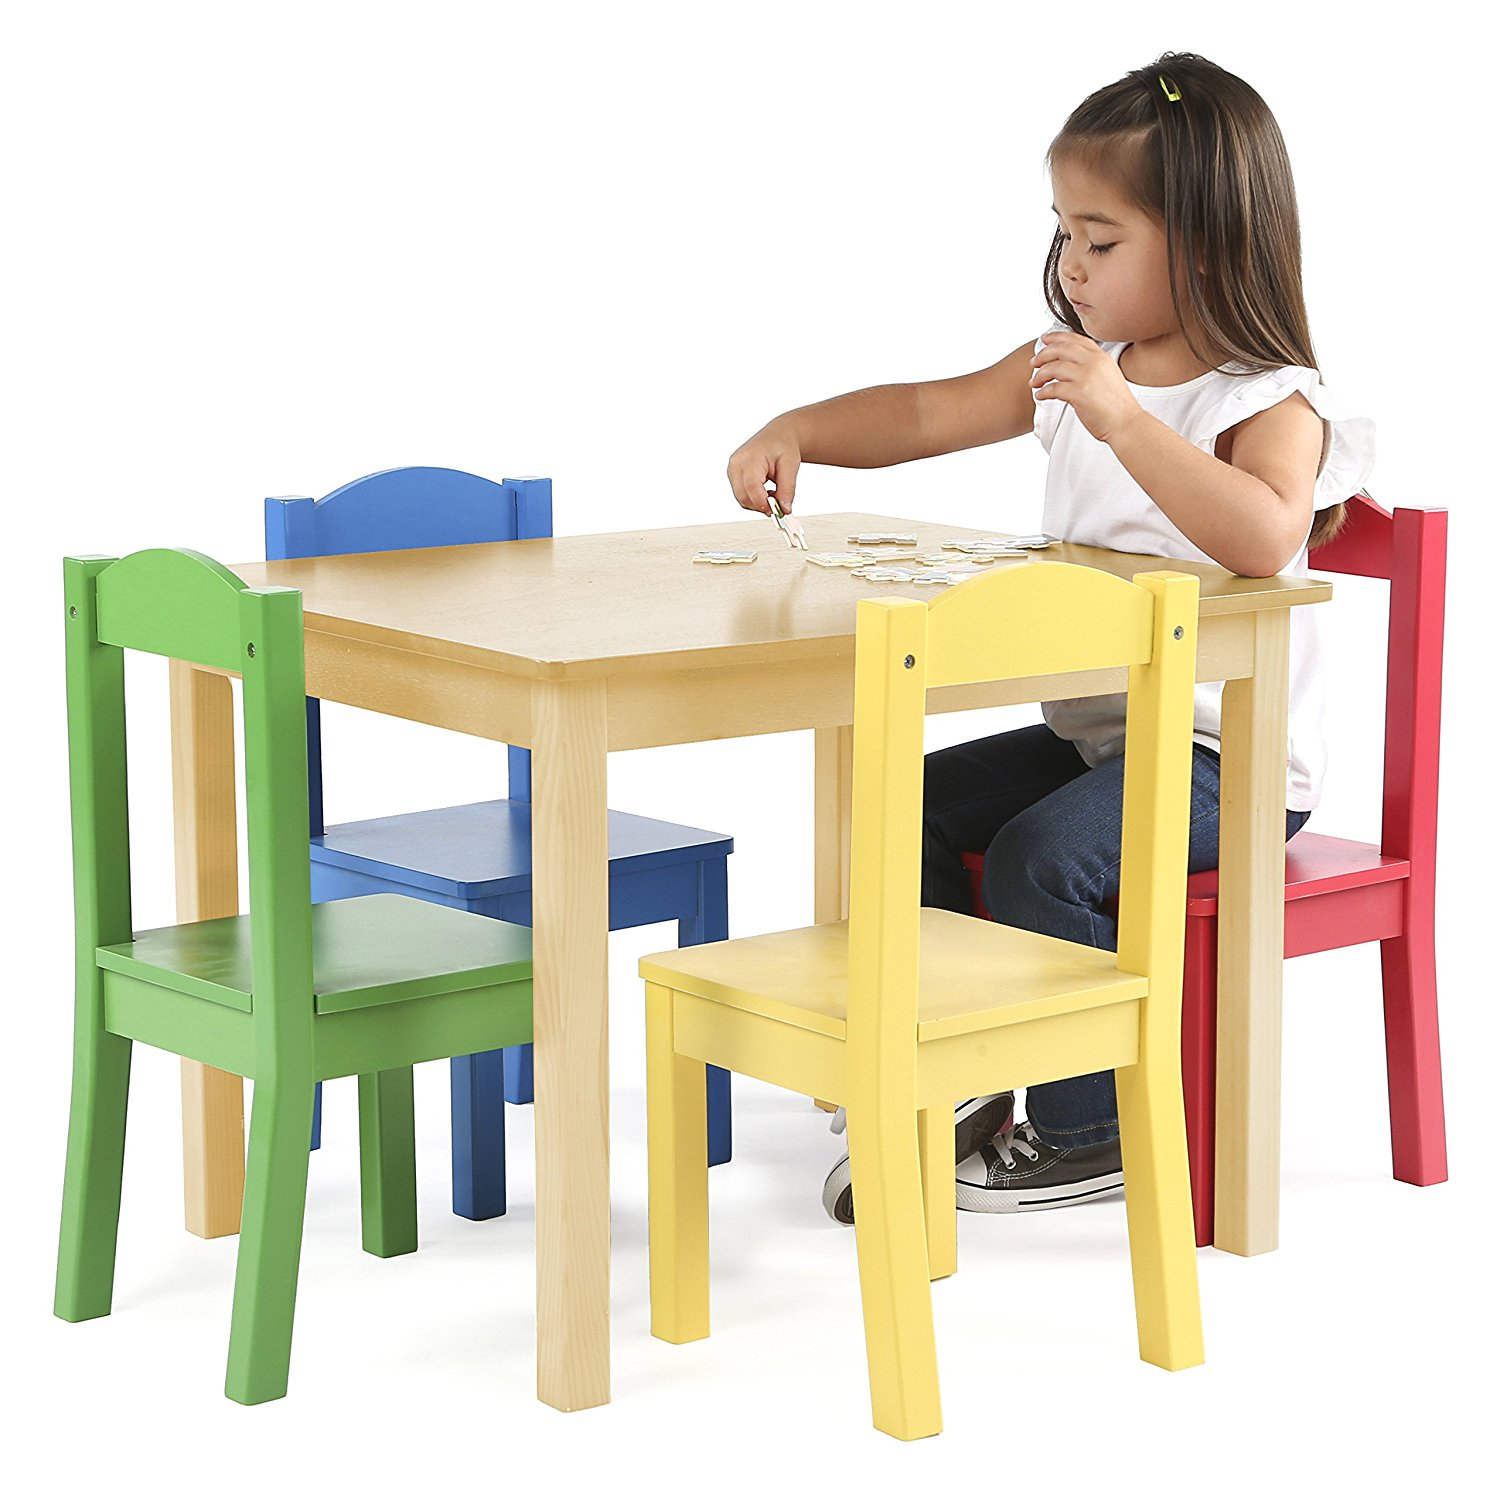 Tot Tutors Primary Wood Table & 4 Chairs